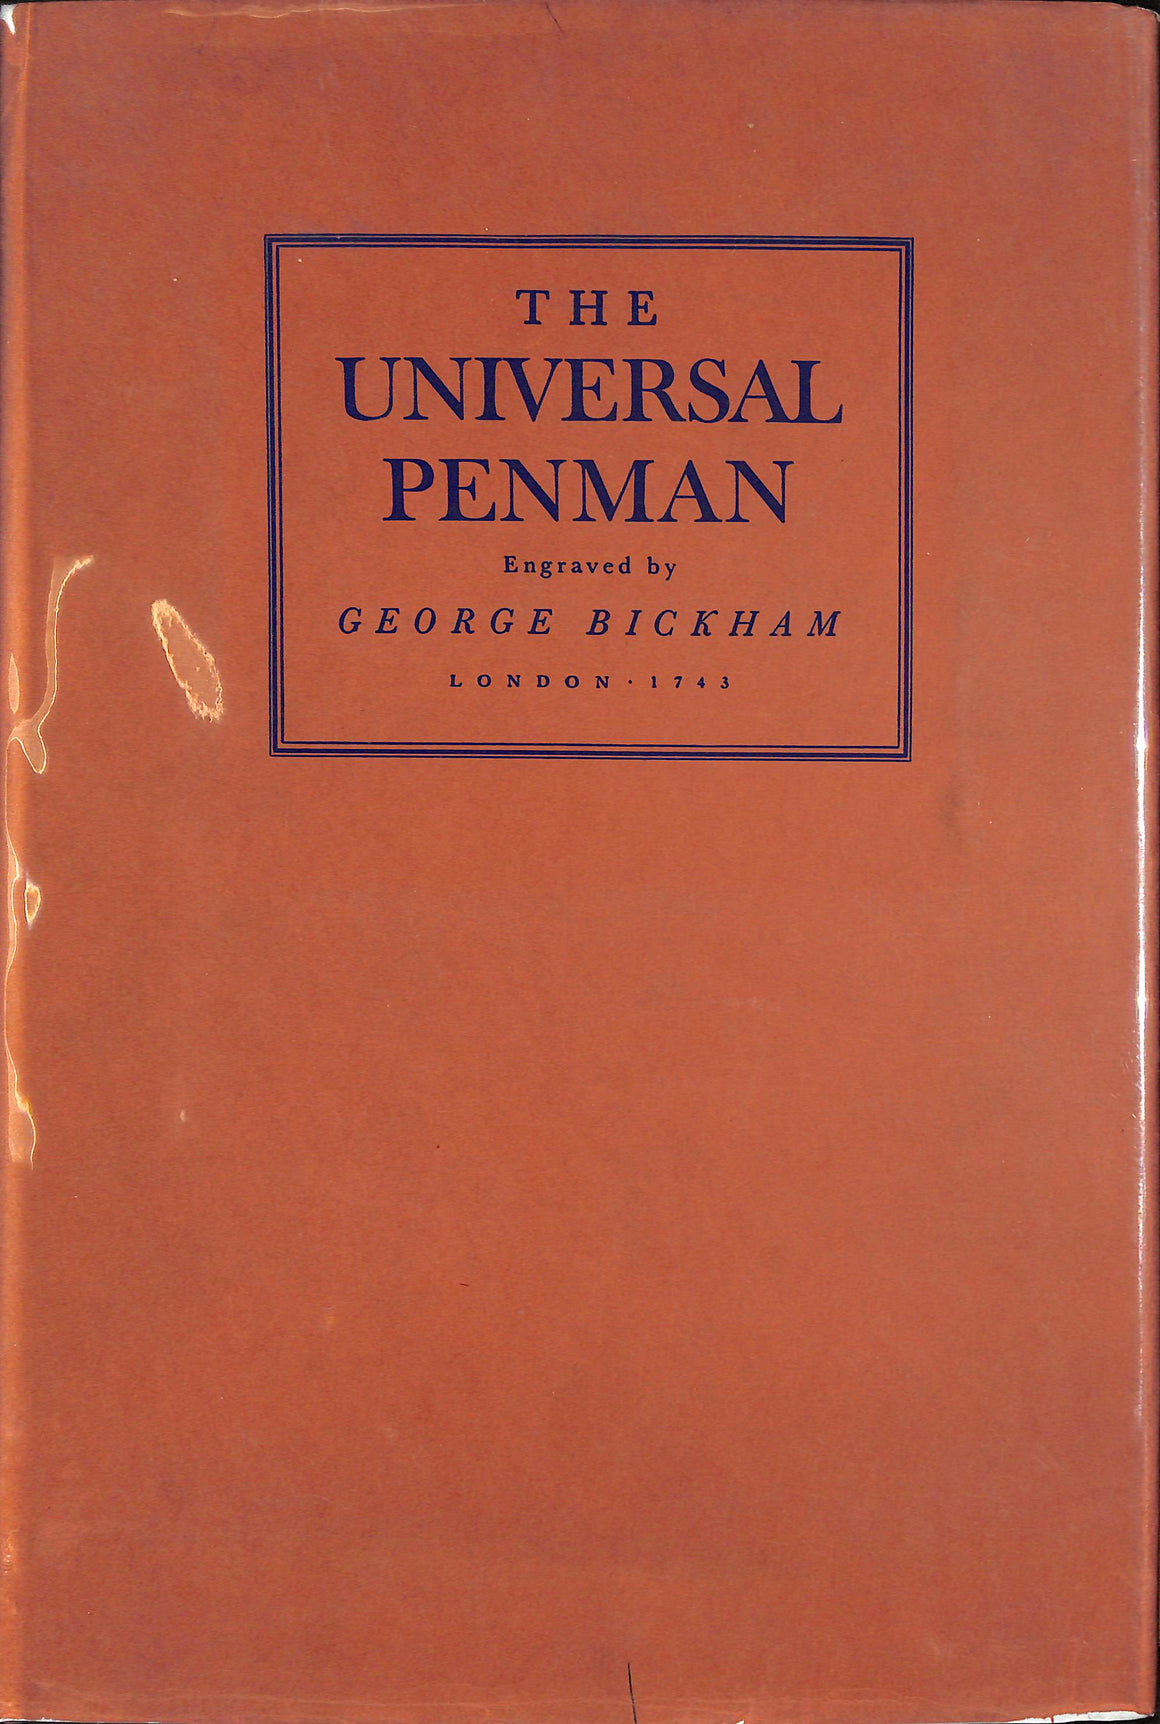 """The Universal Penman"" 1941 (Sold!)"